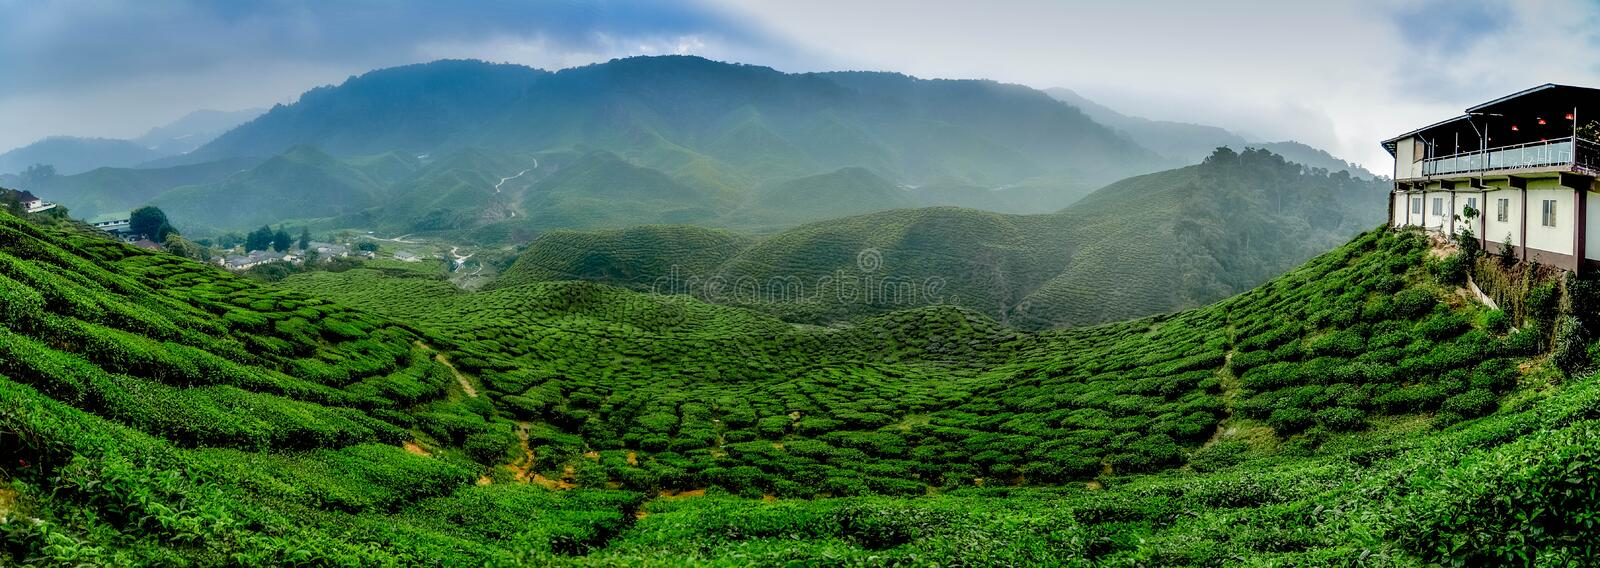 Wide view the beautiful tea plantation at Cameron Highland, Malaysia. Hill curve and slope with fog, cloudy sky royalty free stock photo